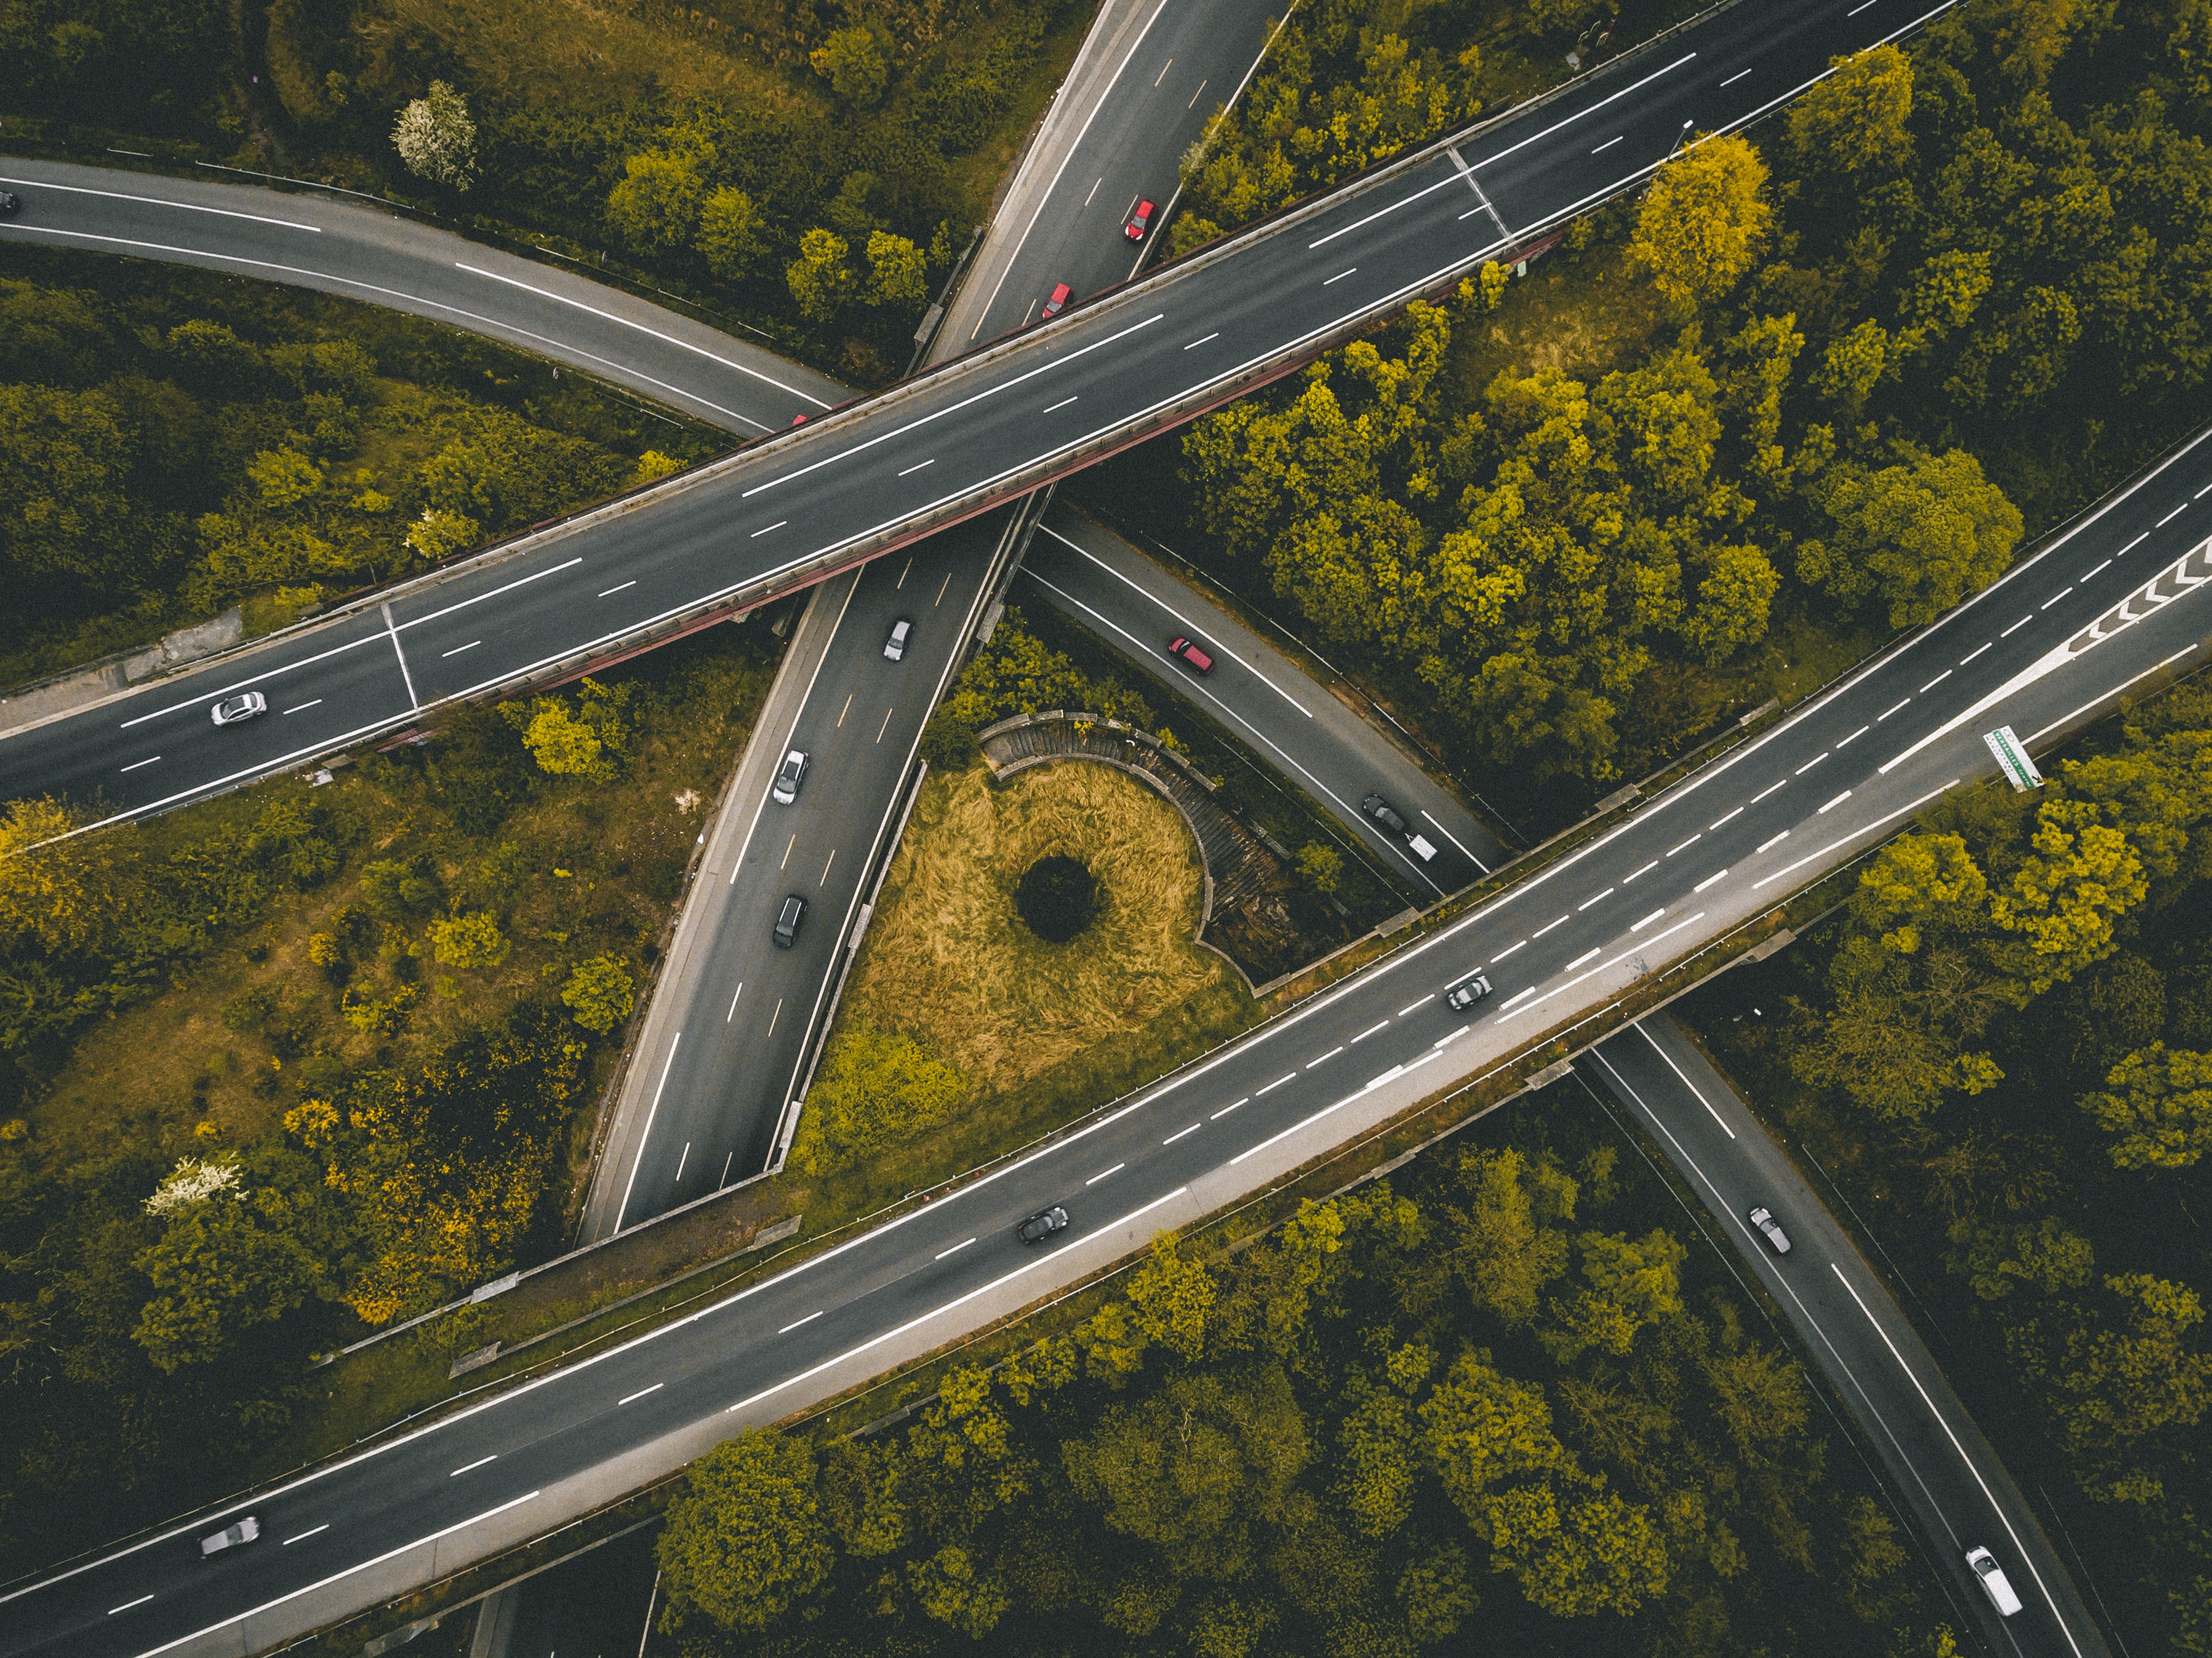 aerial photography of interlocking freeways with travelling cars